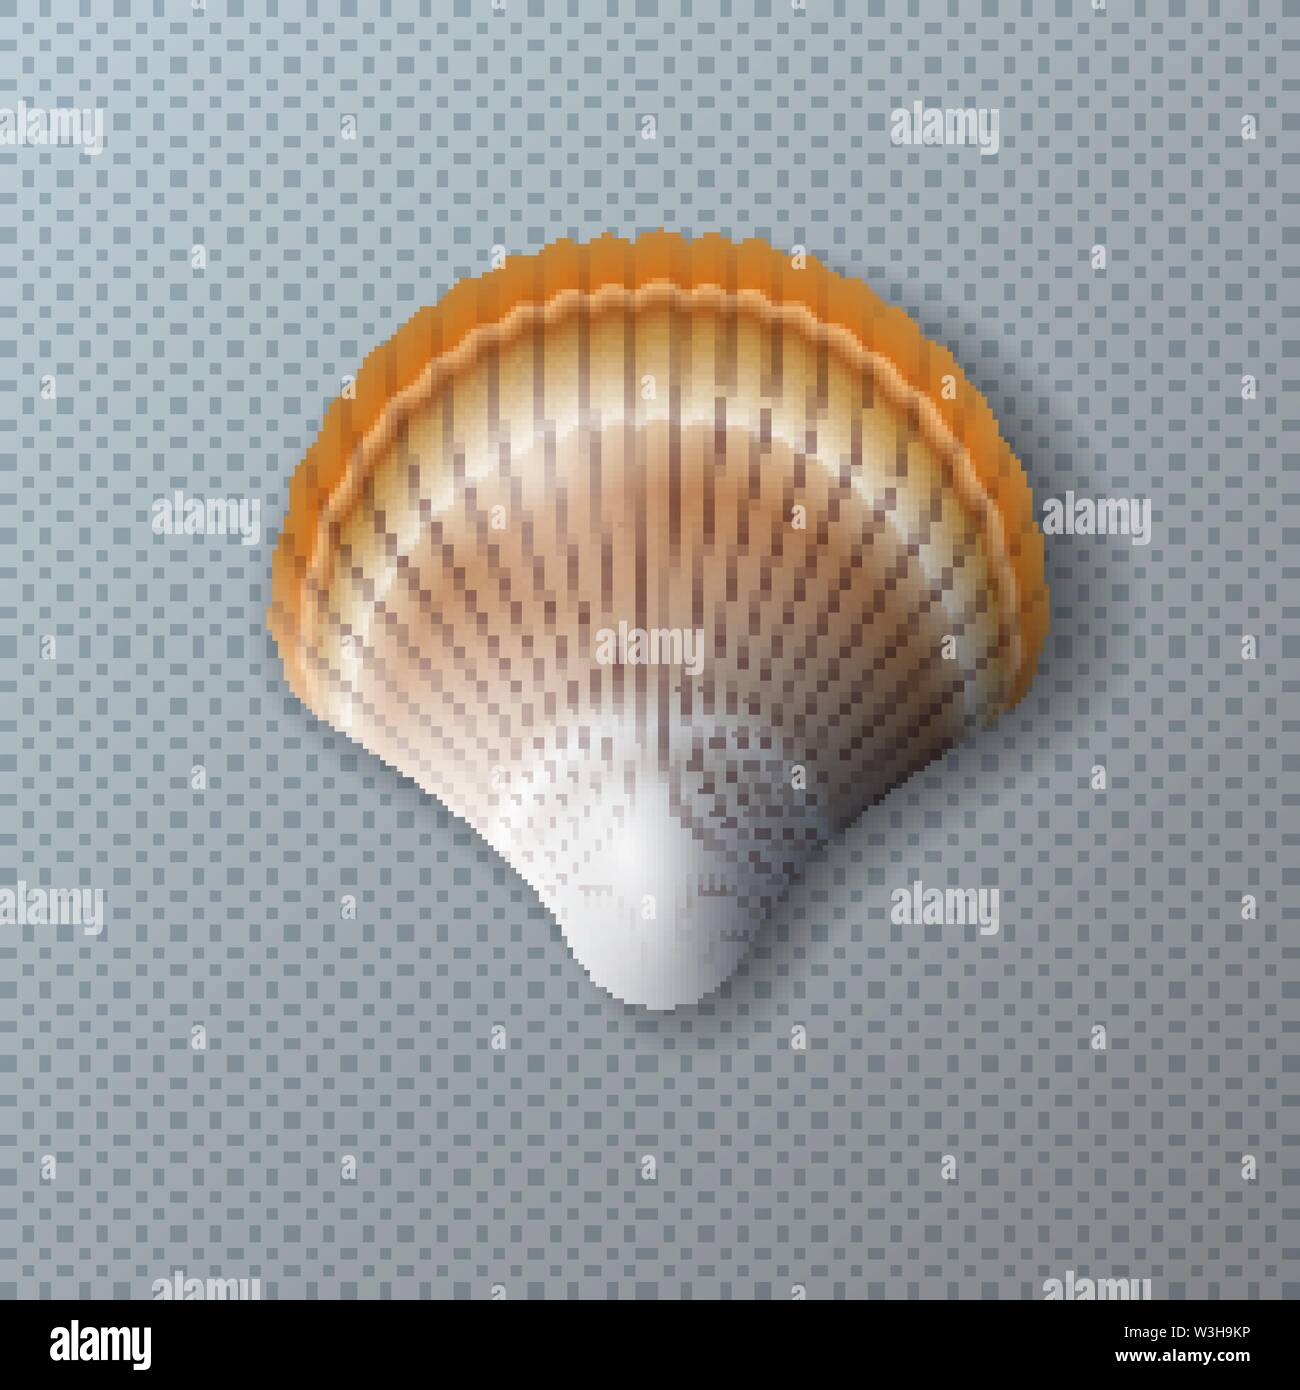 Vector Illustration with Beautiful Shell Isolated on Transparent Background. Vector Nature Sea Design Elemets with Realistic Marine Mollusk Seashell Stock Vector